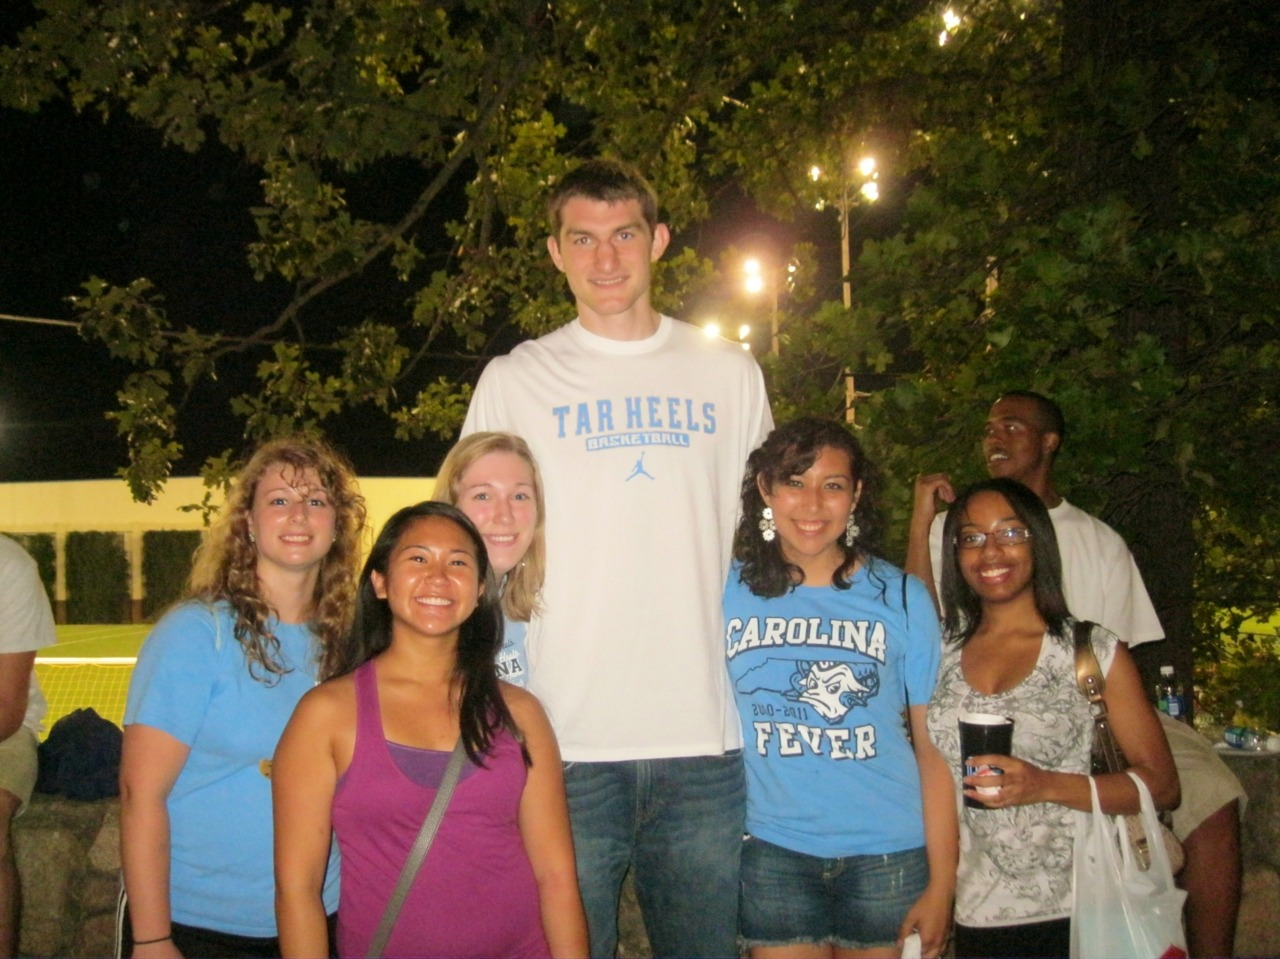 Oh hey, Tyler Zeller. From left to right: Holly Roper, Leslie Uy, Laura Ludwig, Tyler Zeller, Luz Cuaboy, Lakeia Grant.